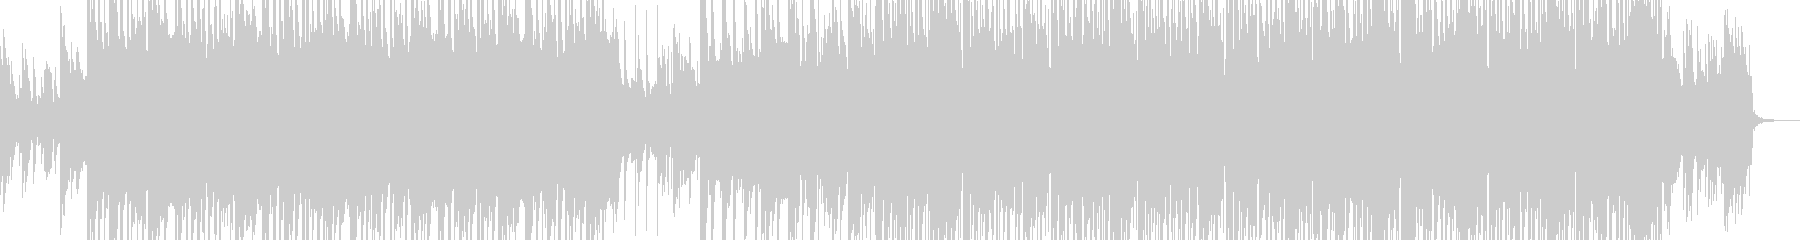 Future-like BGM featuring a spring-like guitar's unreproduced waveform